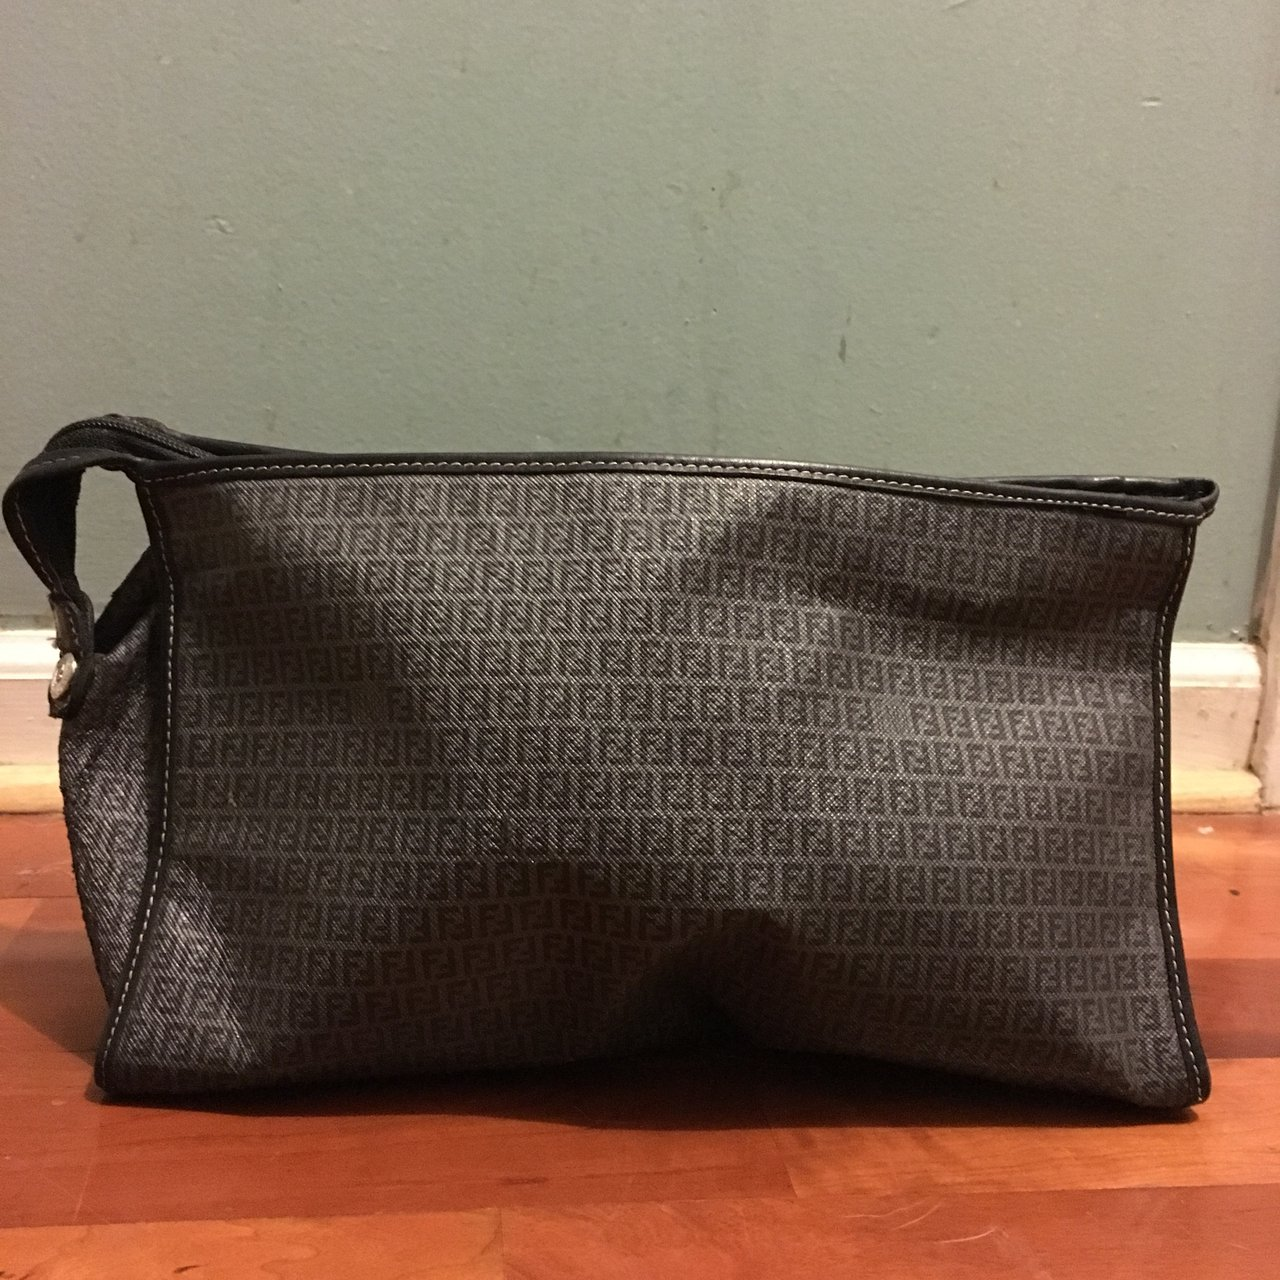 Fendi Clutch bag obvious signs of wear and some areas are in - Depop ee1422cc8ec1e